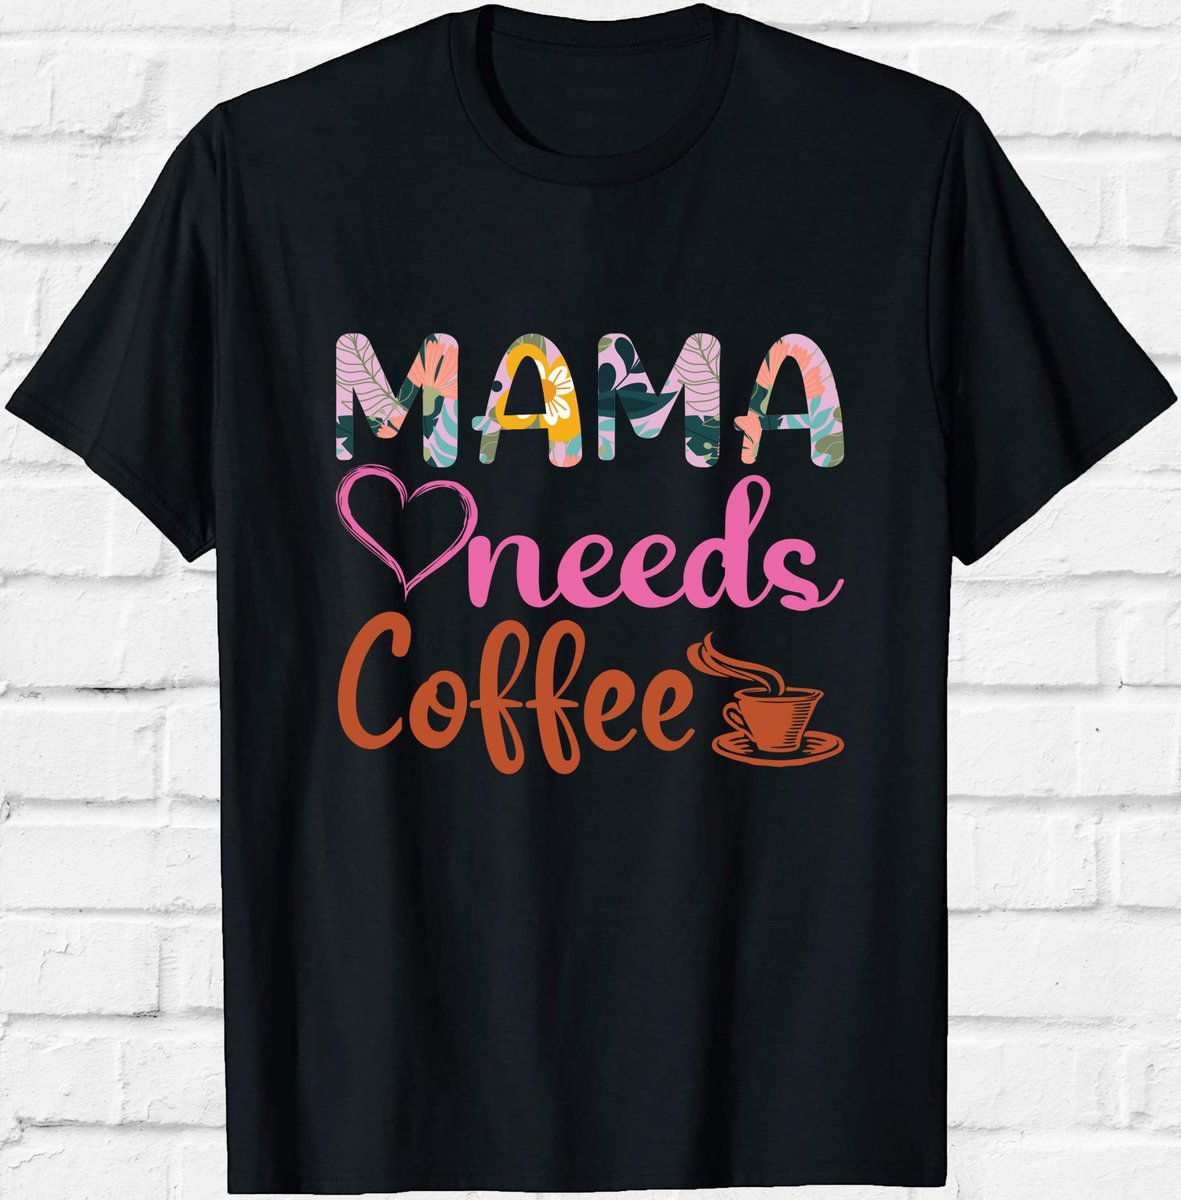 If anyone needs custom any niches T-Shirt design, feel free to knock me, please. Website:   #awesamtwtselfieday #XMenVote #QCongress #stlblues #ProtectNayeon #FFBWednesday #wednesdaythought #WednesdayMotivation #HolocaustMemorialDay  #LeafsForever  #CofRed